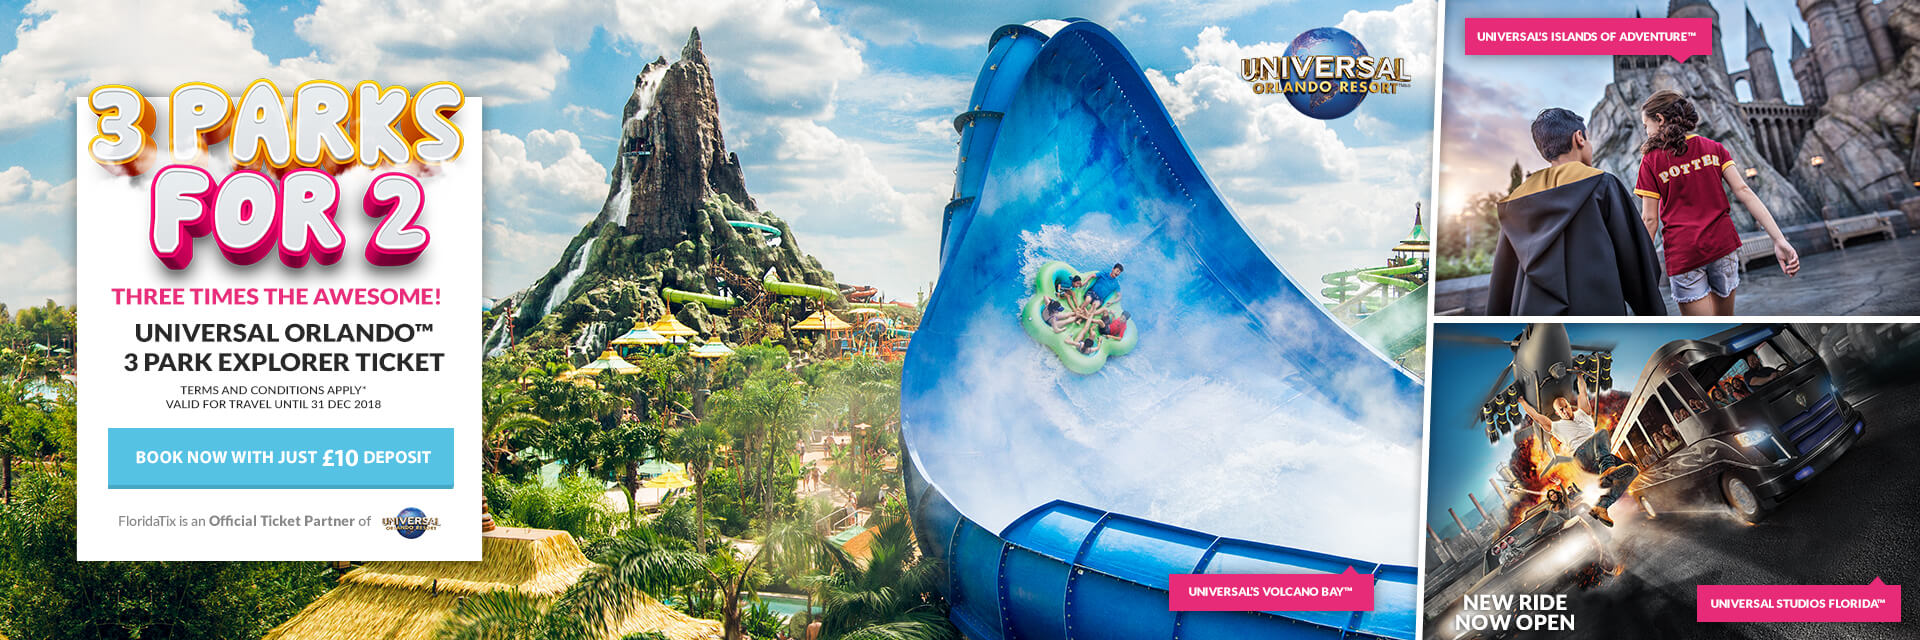 Universal Orlando Resort: Three Parks. Endless Awesome